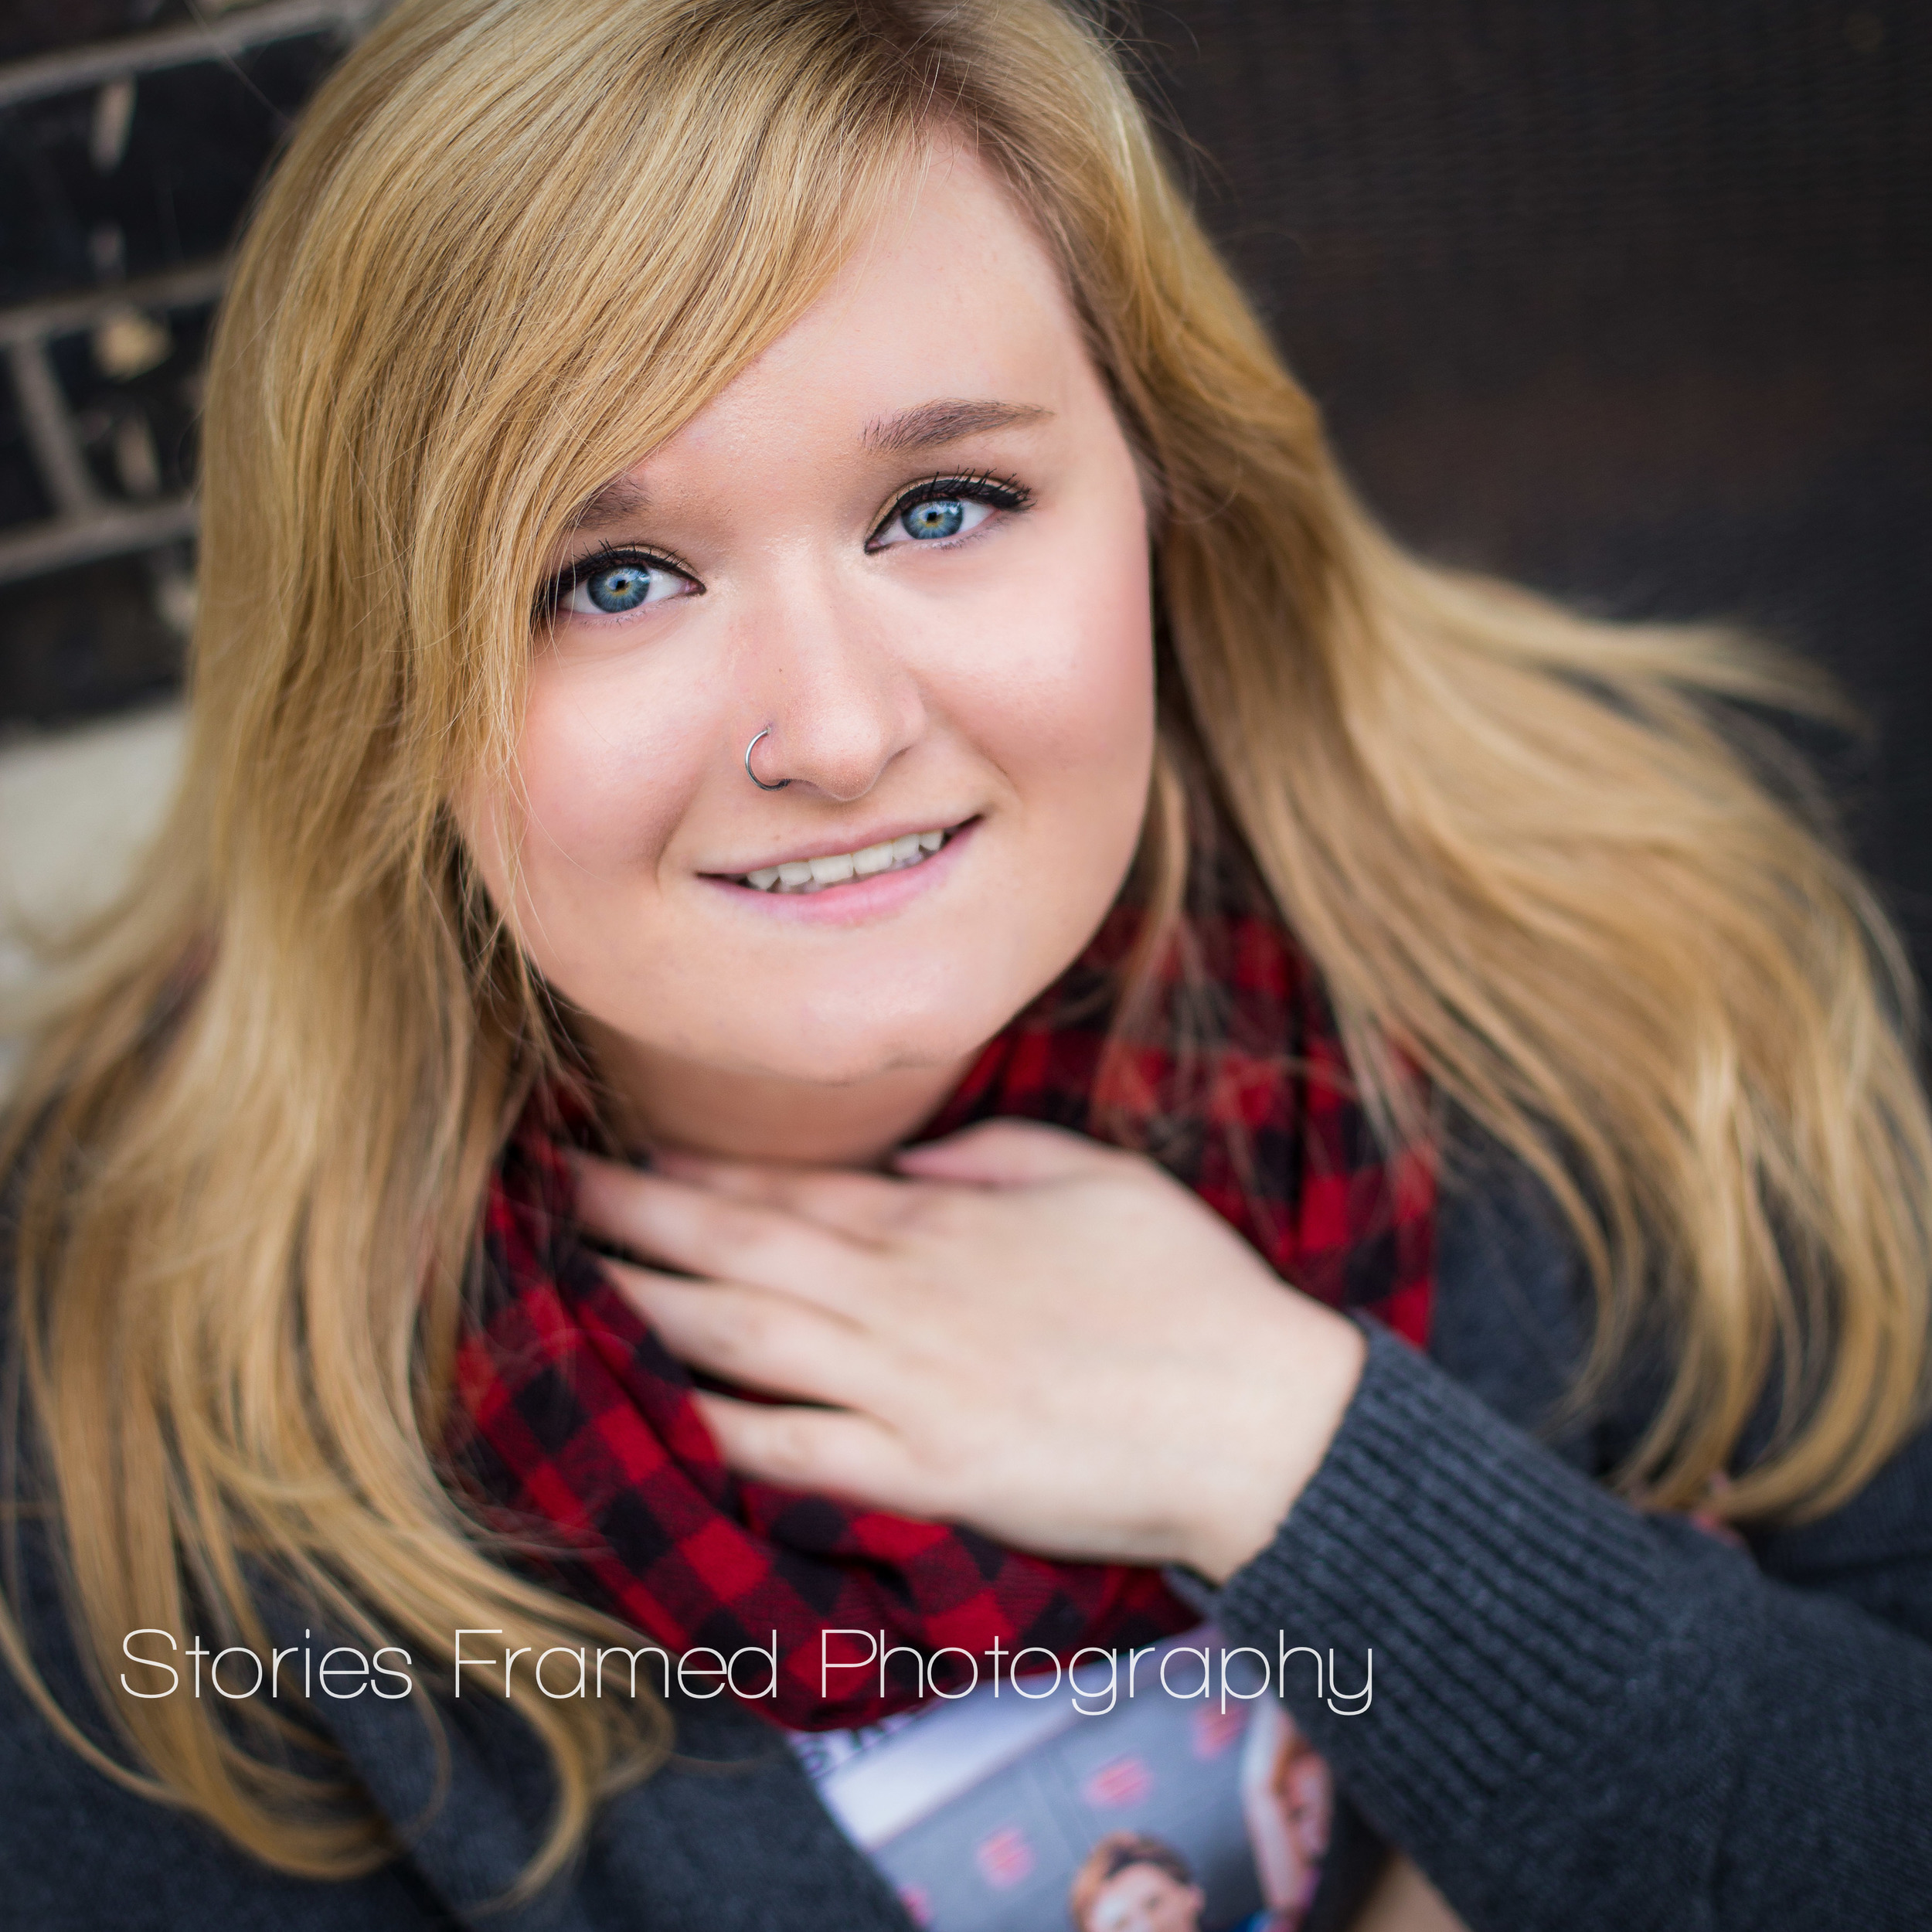 Kenzie's makeup colors are all very natural. For this session, she chose to add some foundation and powder to even out her skin. Notice her eye makeup - it's very clean - mostly mascara was used to accentuate her - omg! - beautiful blue eyes.